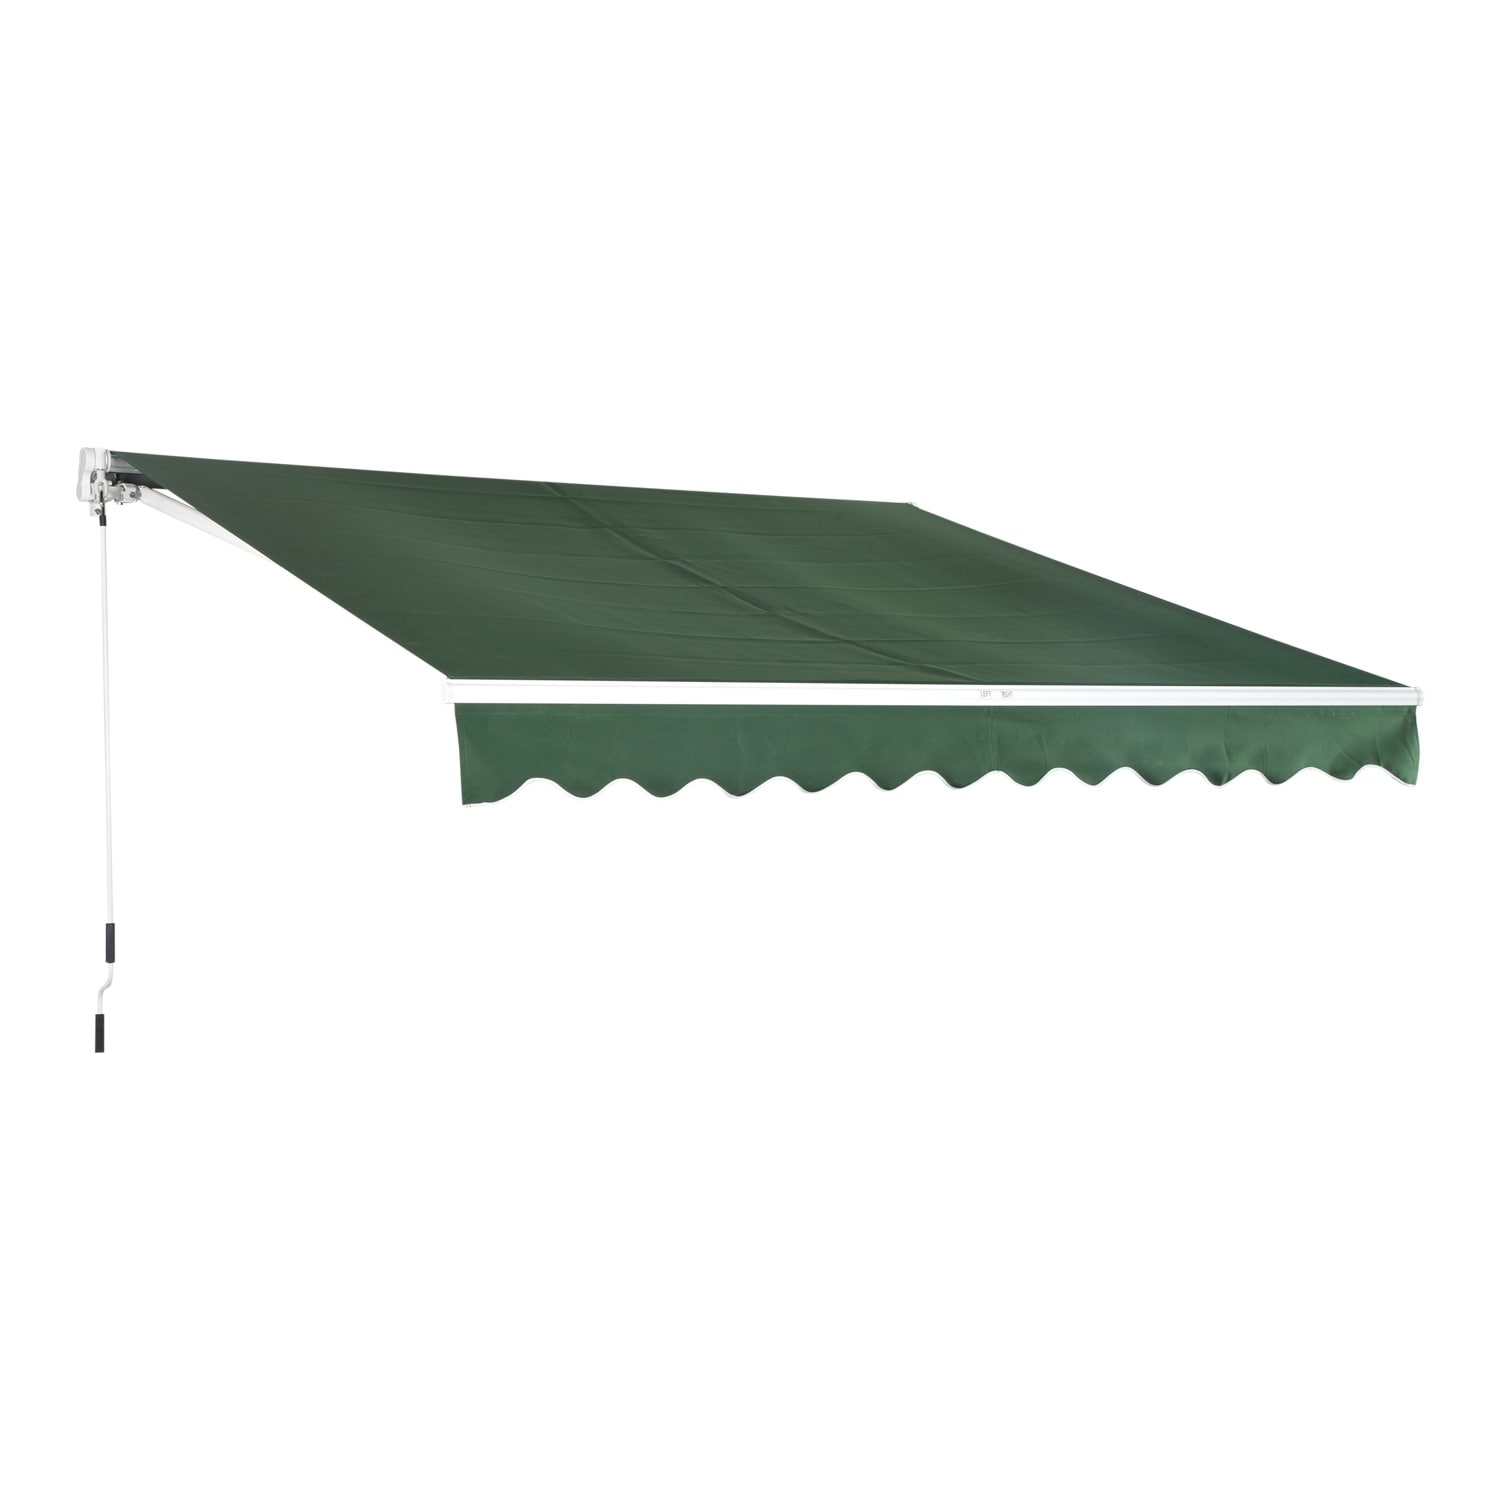 sun shade awning rain outdoor patio living waterproof manual retractable outsunny front back canopy cover door shelter